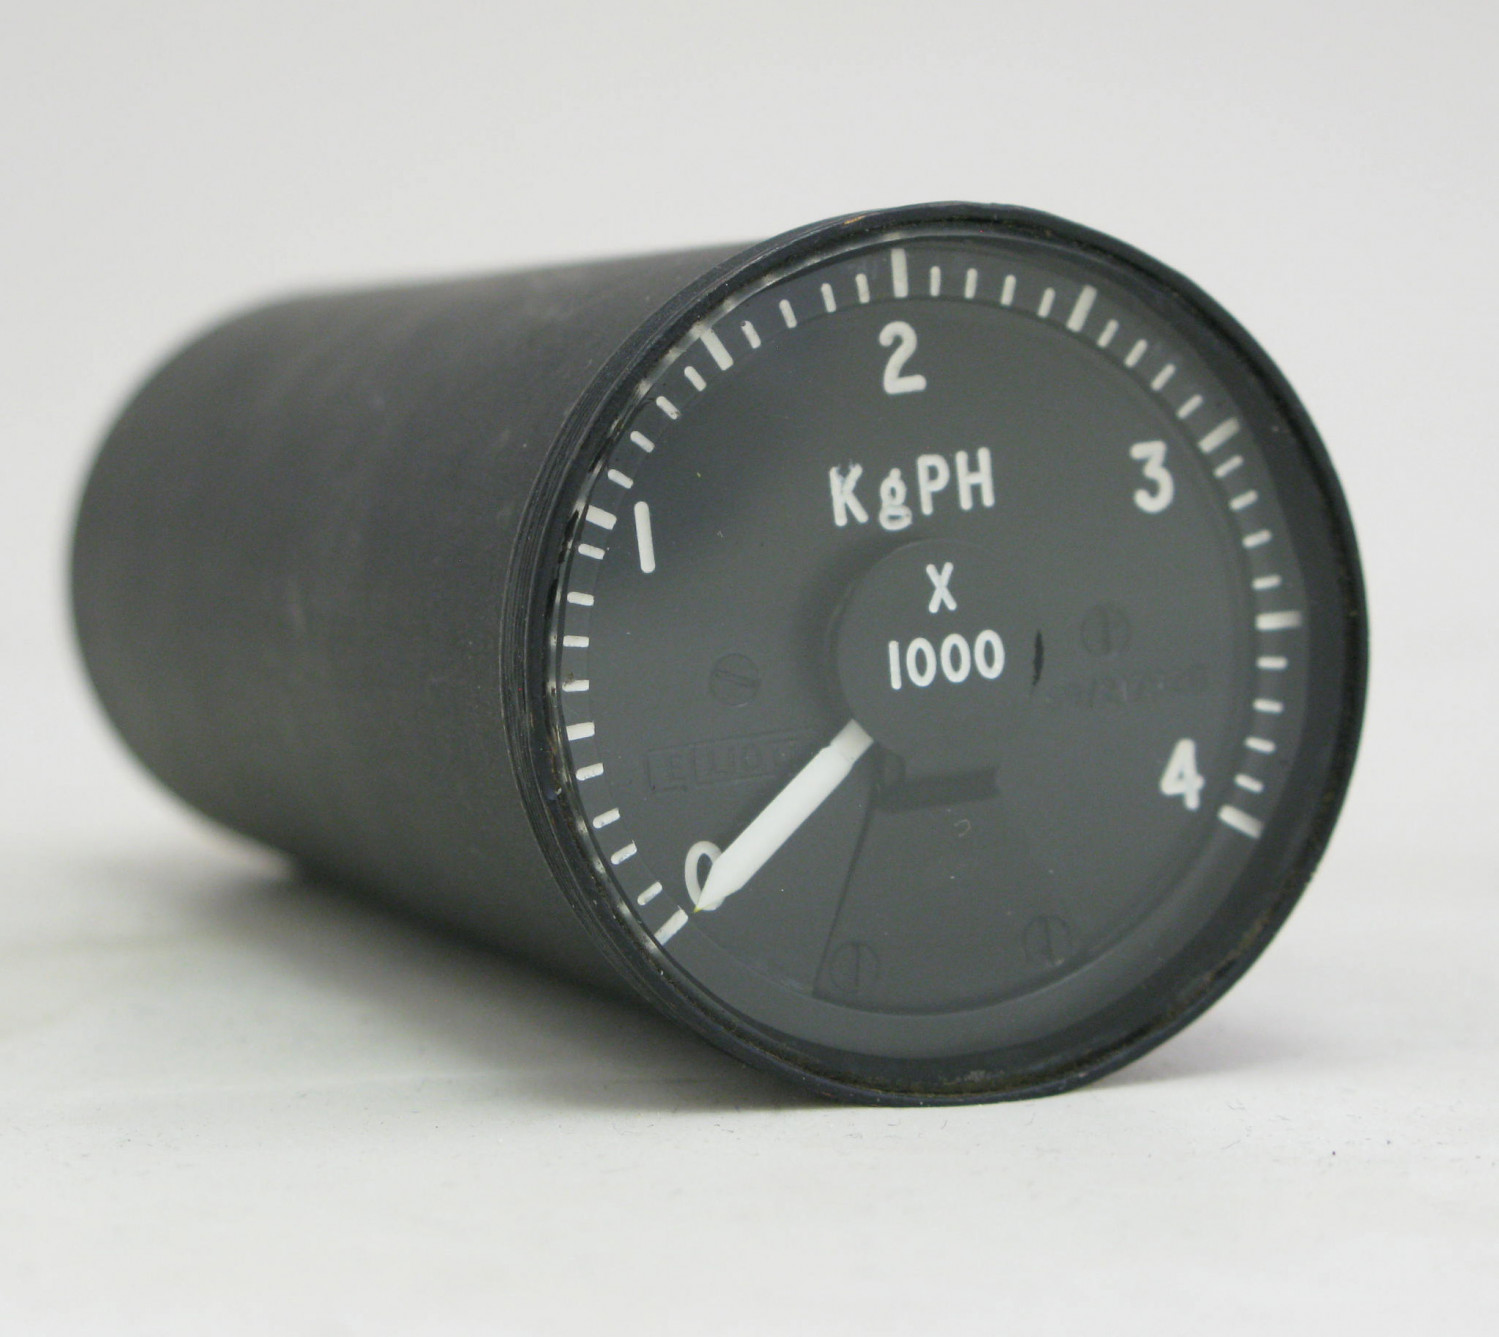 Fuel Flow Rate Indicator